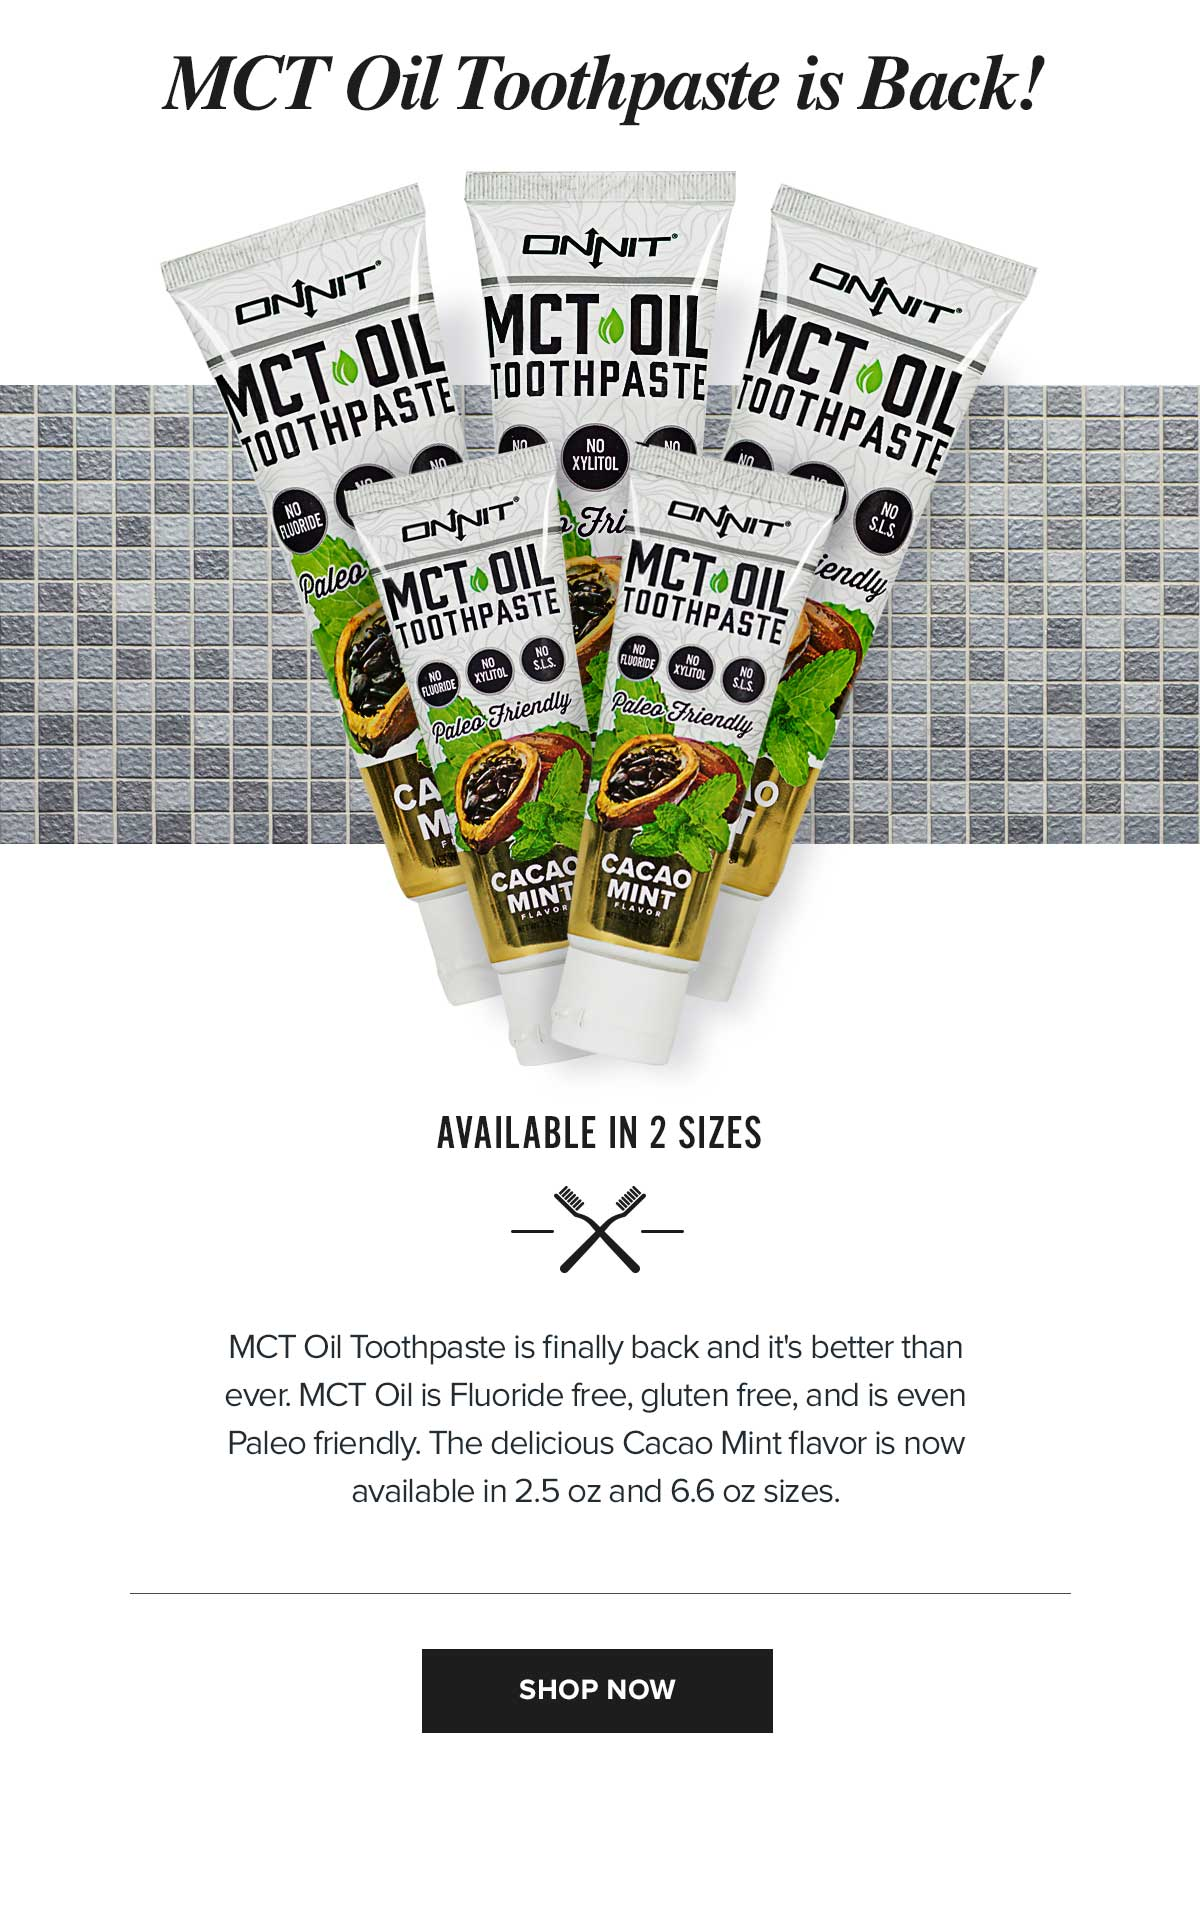 Onnit MCT Oil Toothpaste